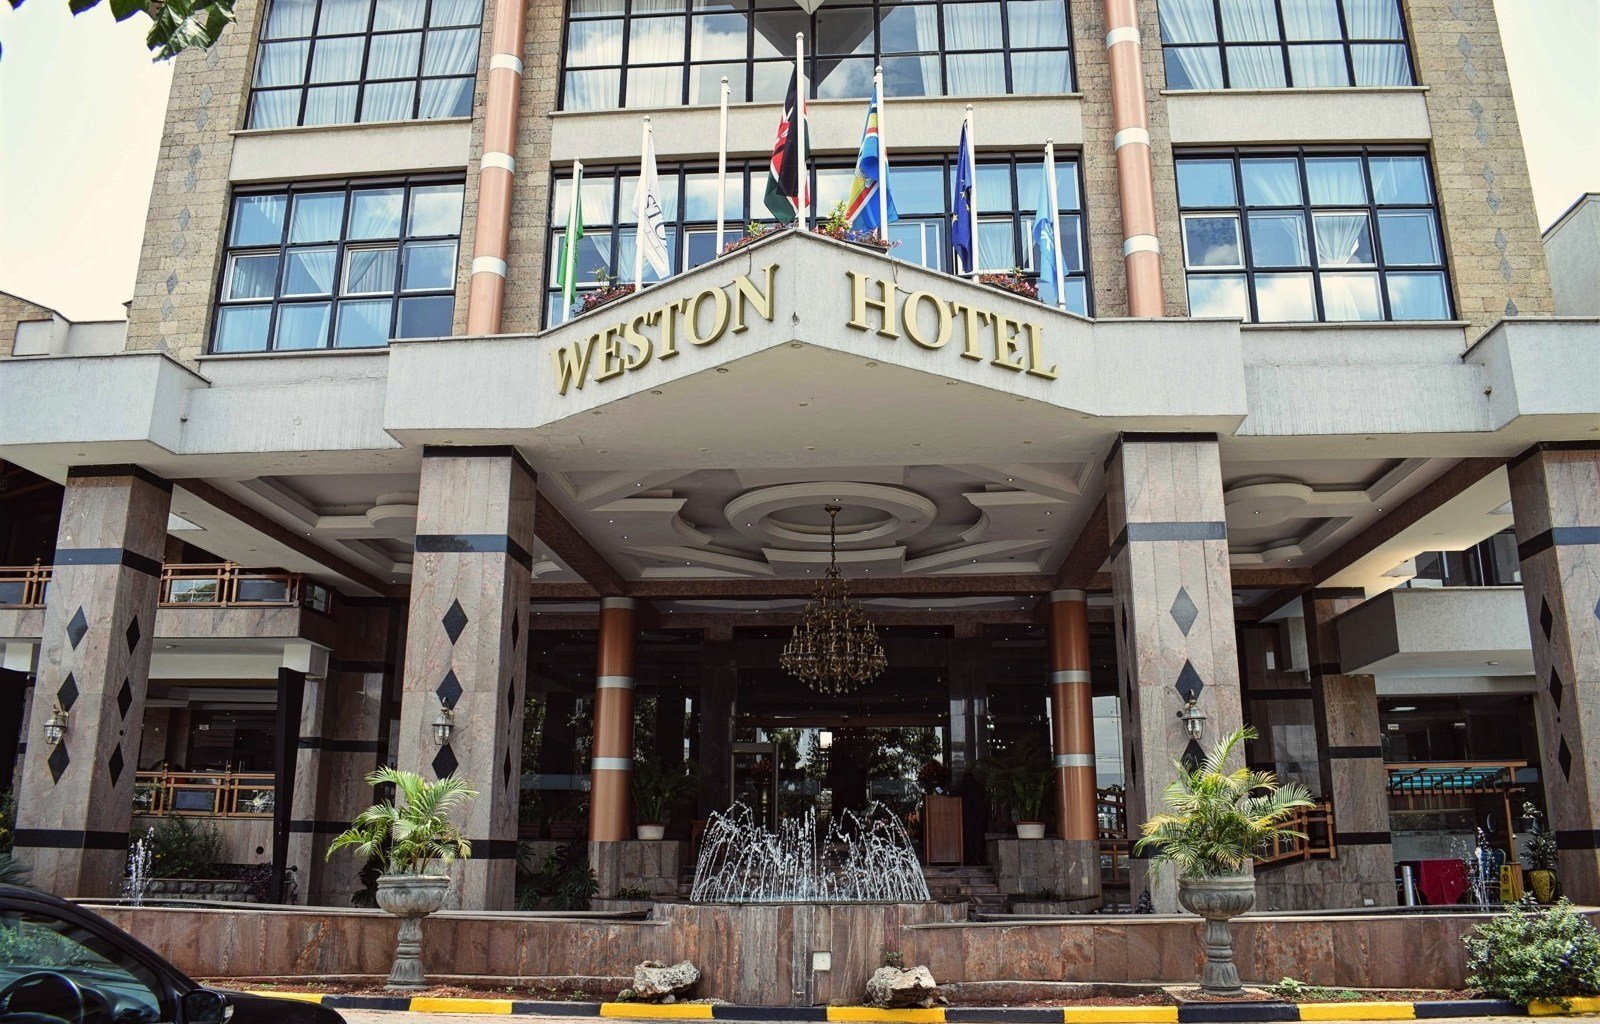 47 people test positive for Cholera at Deputy President Ruto's Weston Hotel